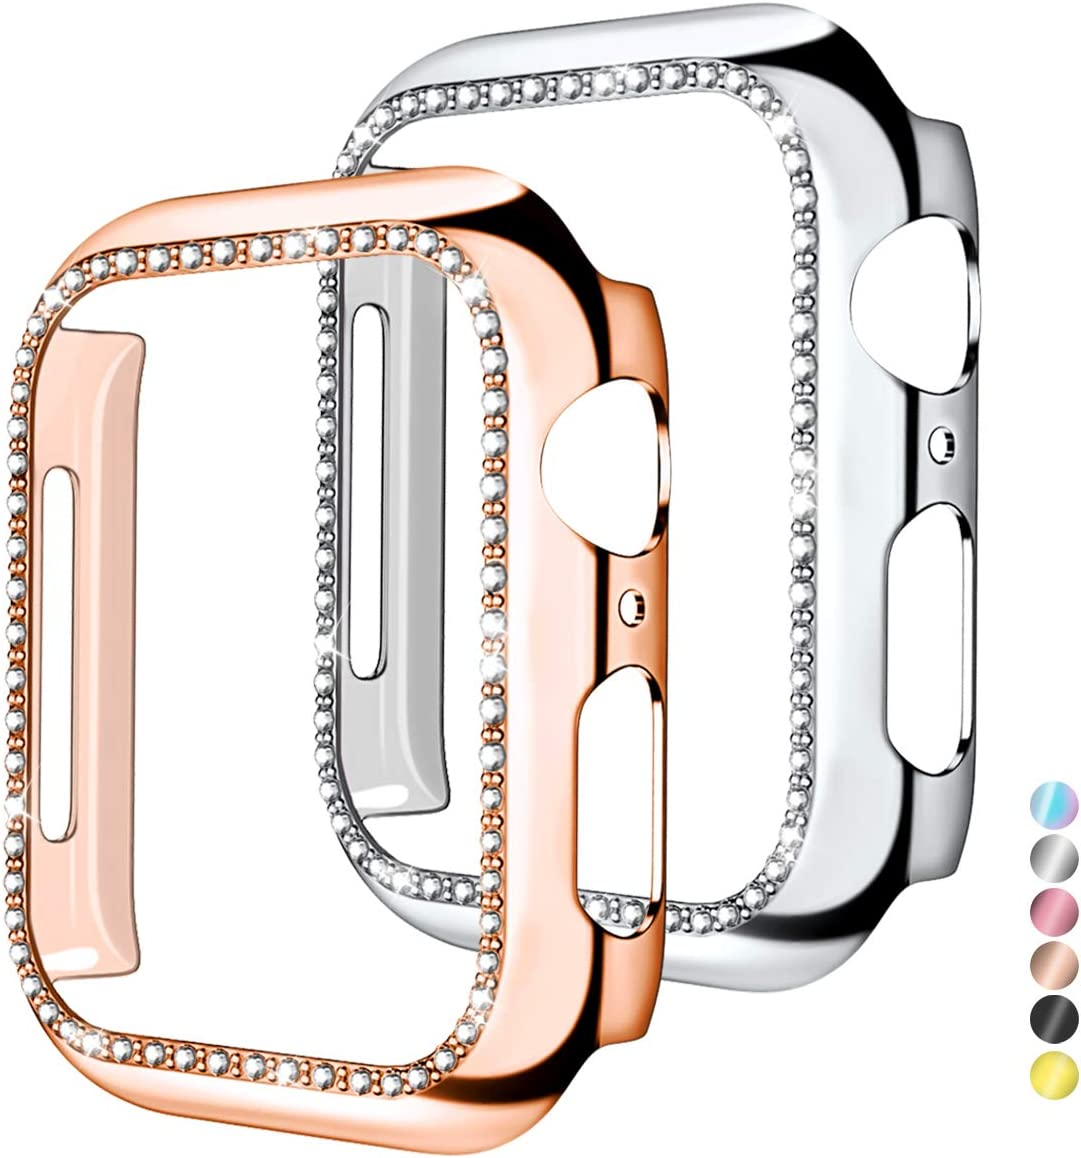 Mastten 2-Pack Case Cover Compatible with Apple Watch 38mm, Bling Diamond Bordered Protector Compatible with Series 3 2 1, Rose Gold+Silver